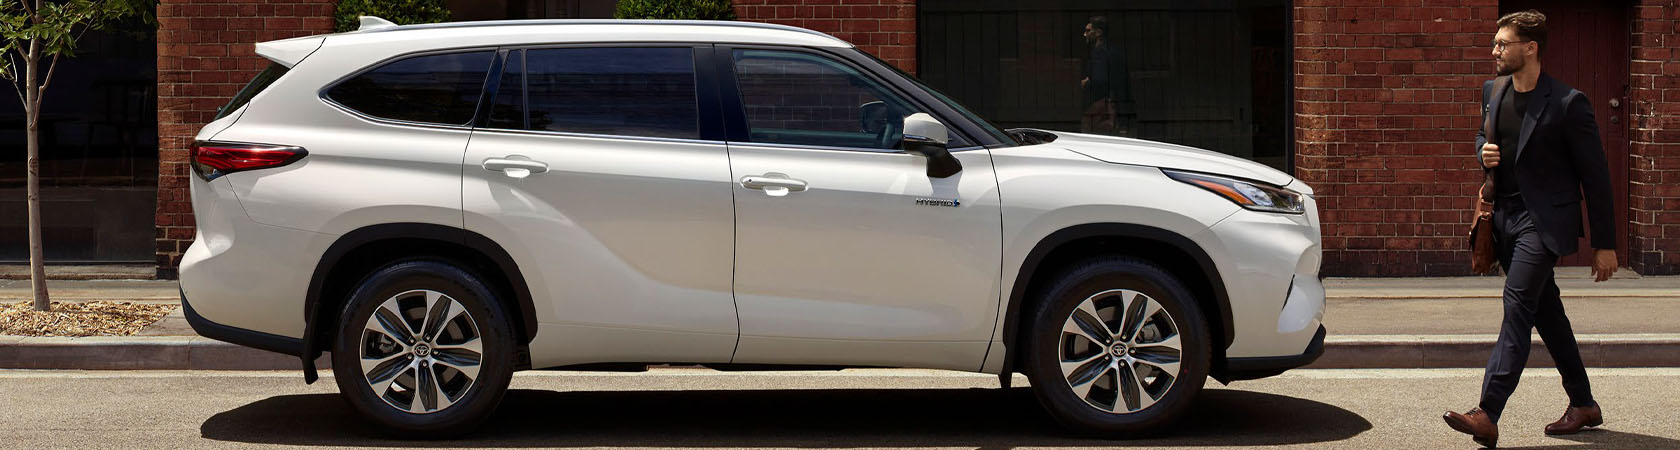 Maryborough Toyota Kluger